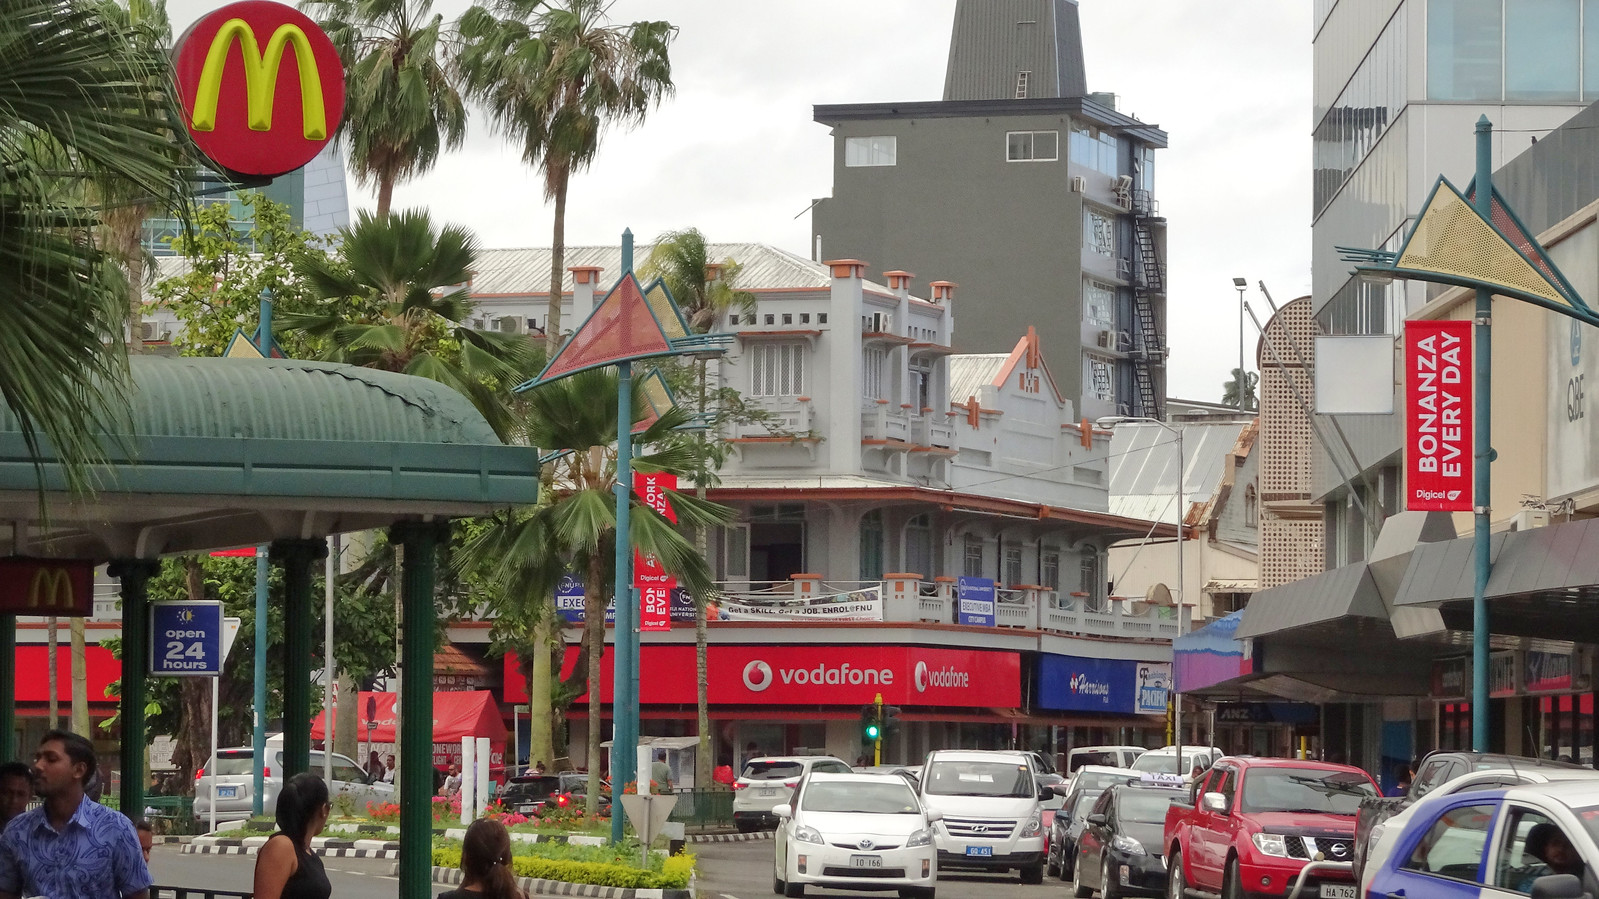 Suva fiji the economic capital of south pacific skyscrapercity flickr rovingspirits publicscrutiny Image collections